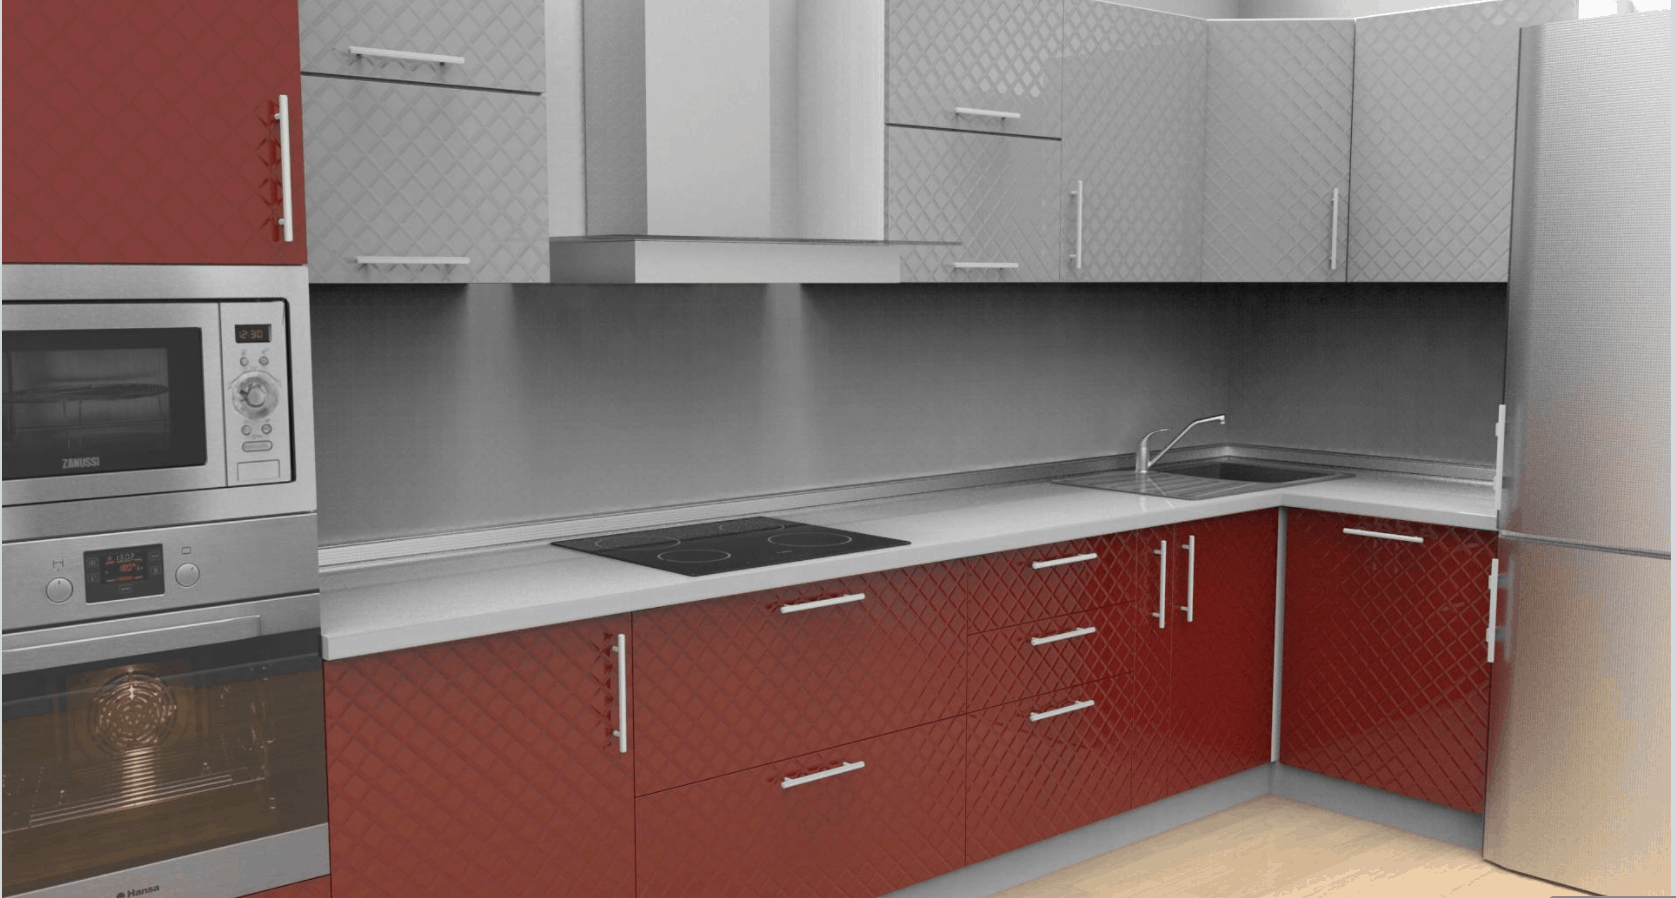 design a kitchen online espresso pantry 17 best software options in 2019 free paid example rendering of red using prodboard